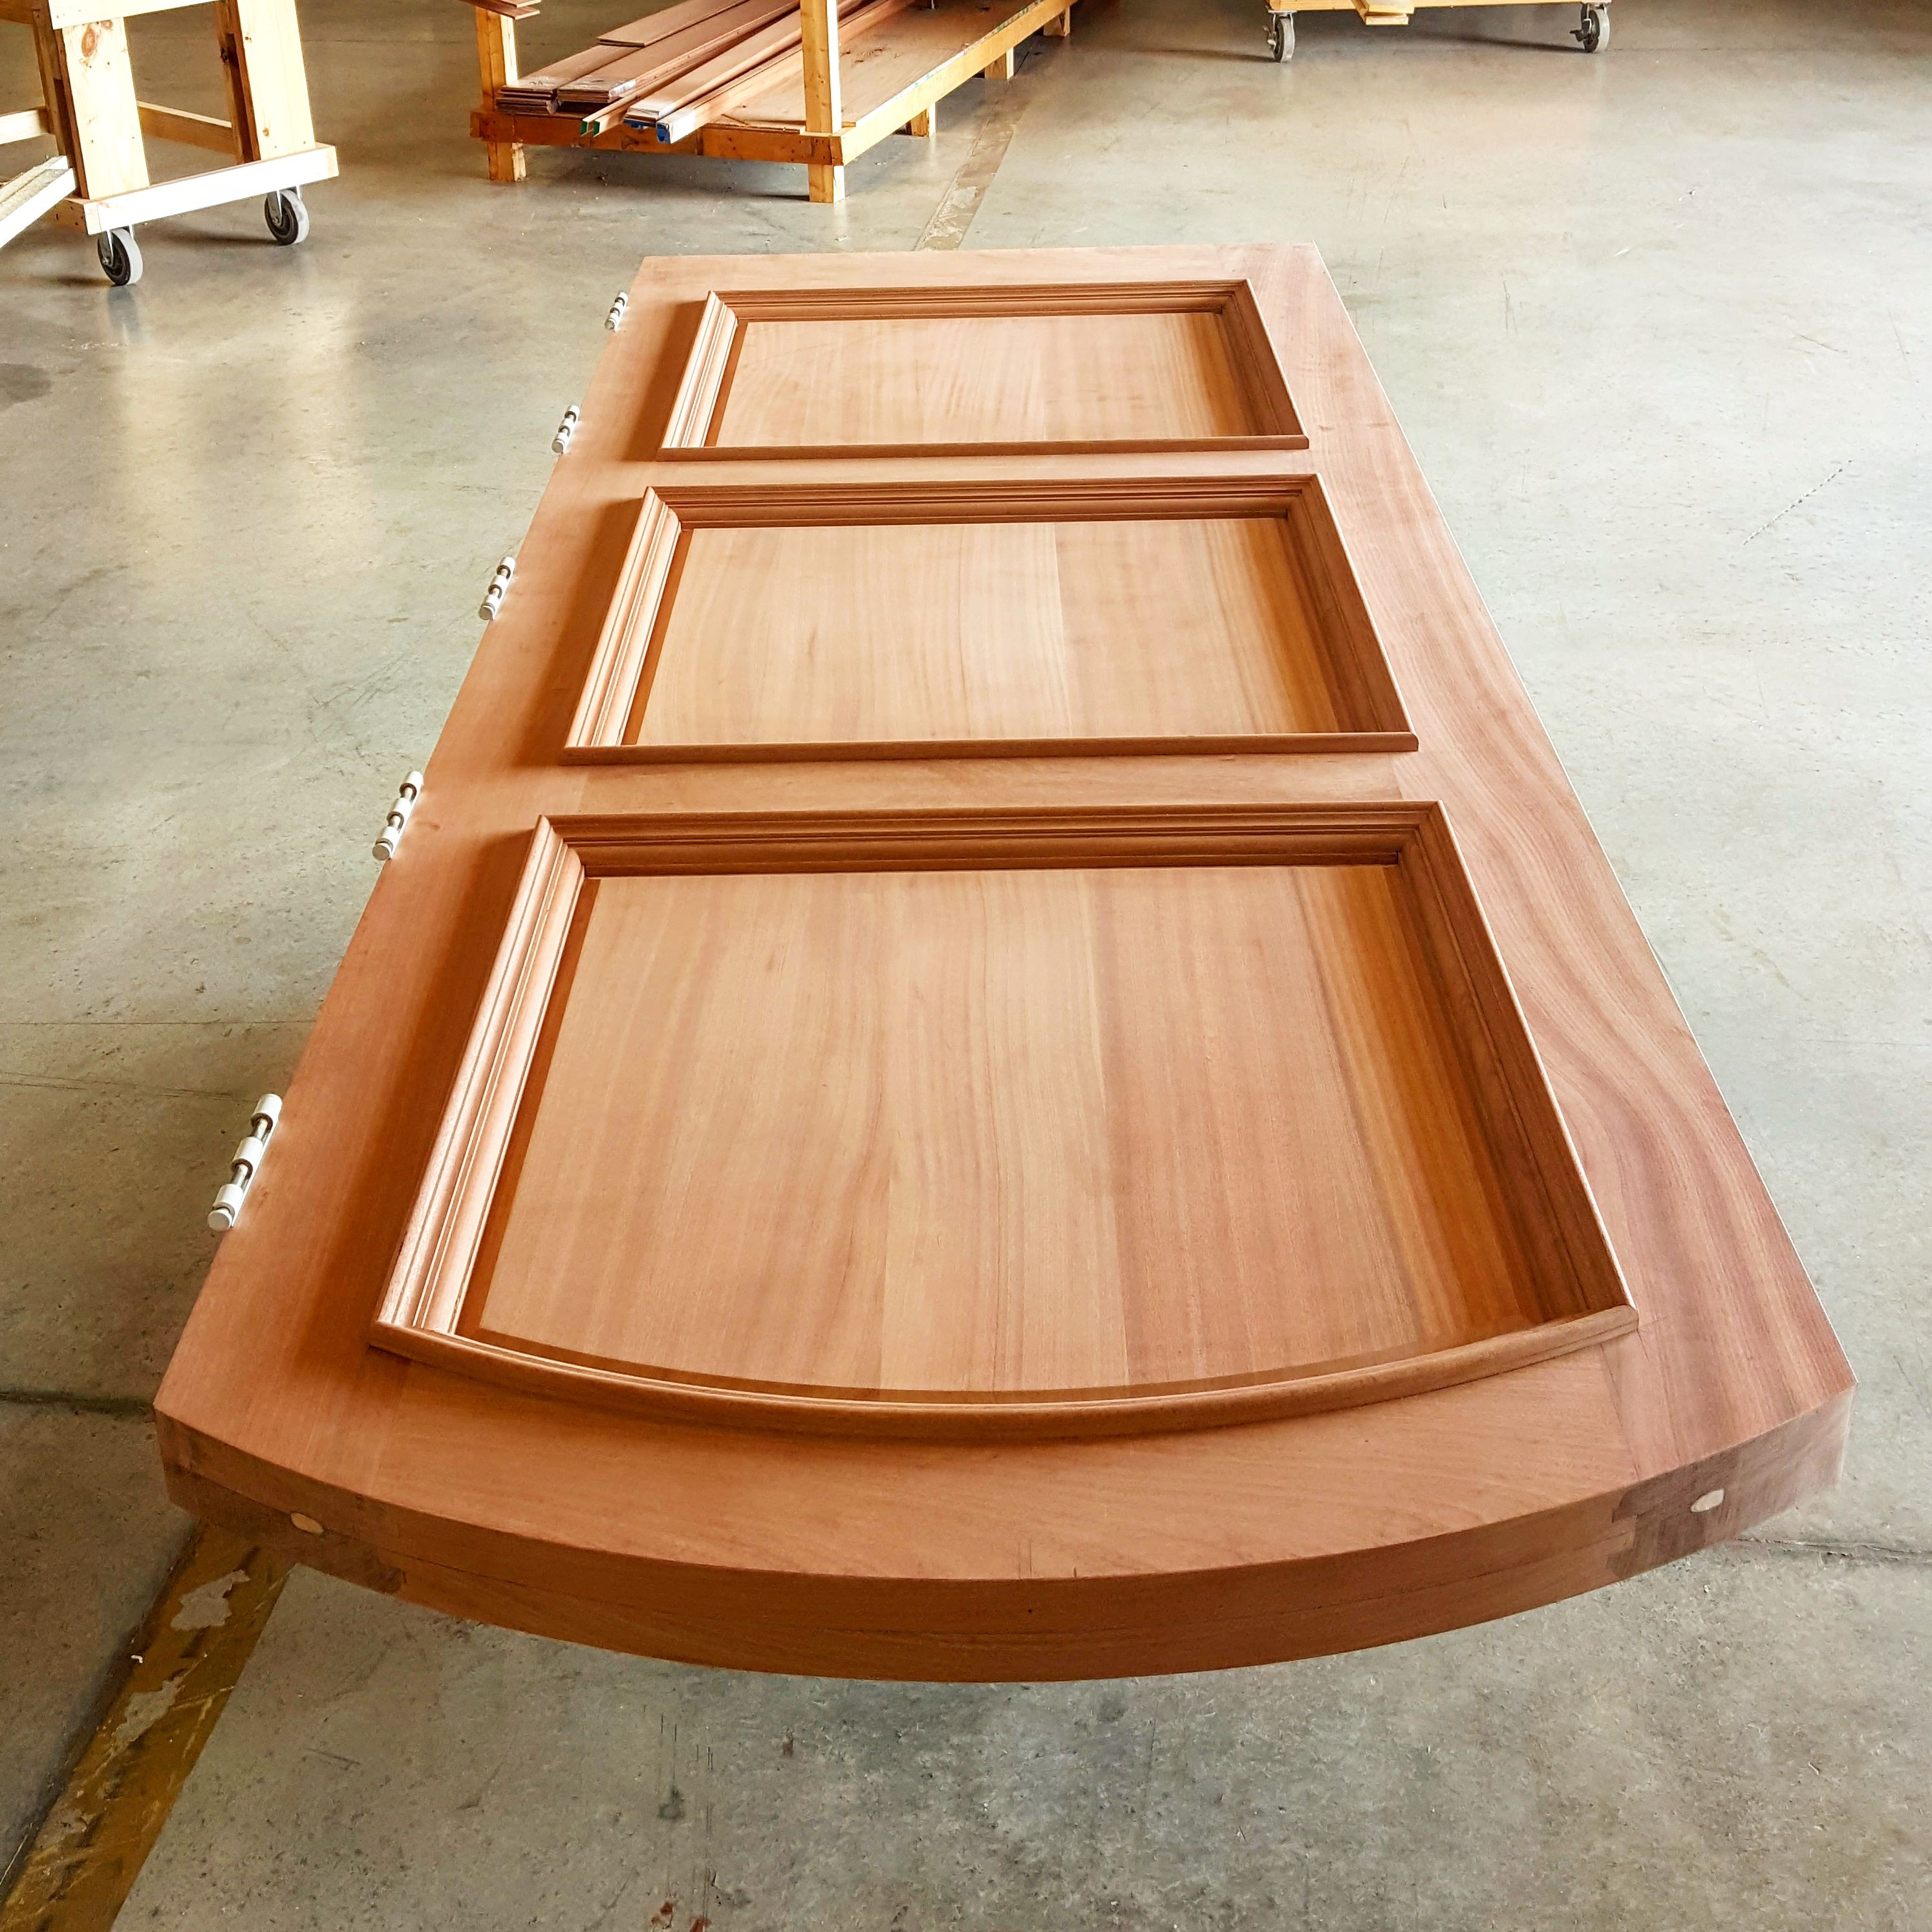 Beau Beautiful Custom Sapele Mahogany Door From The 84 Lumber Millwork In West  Palm Beach